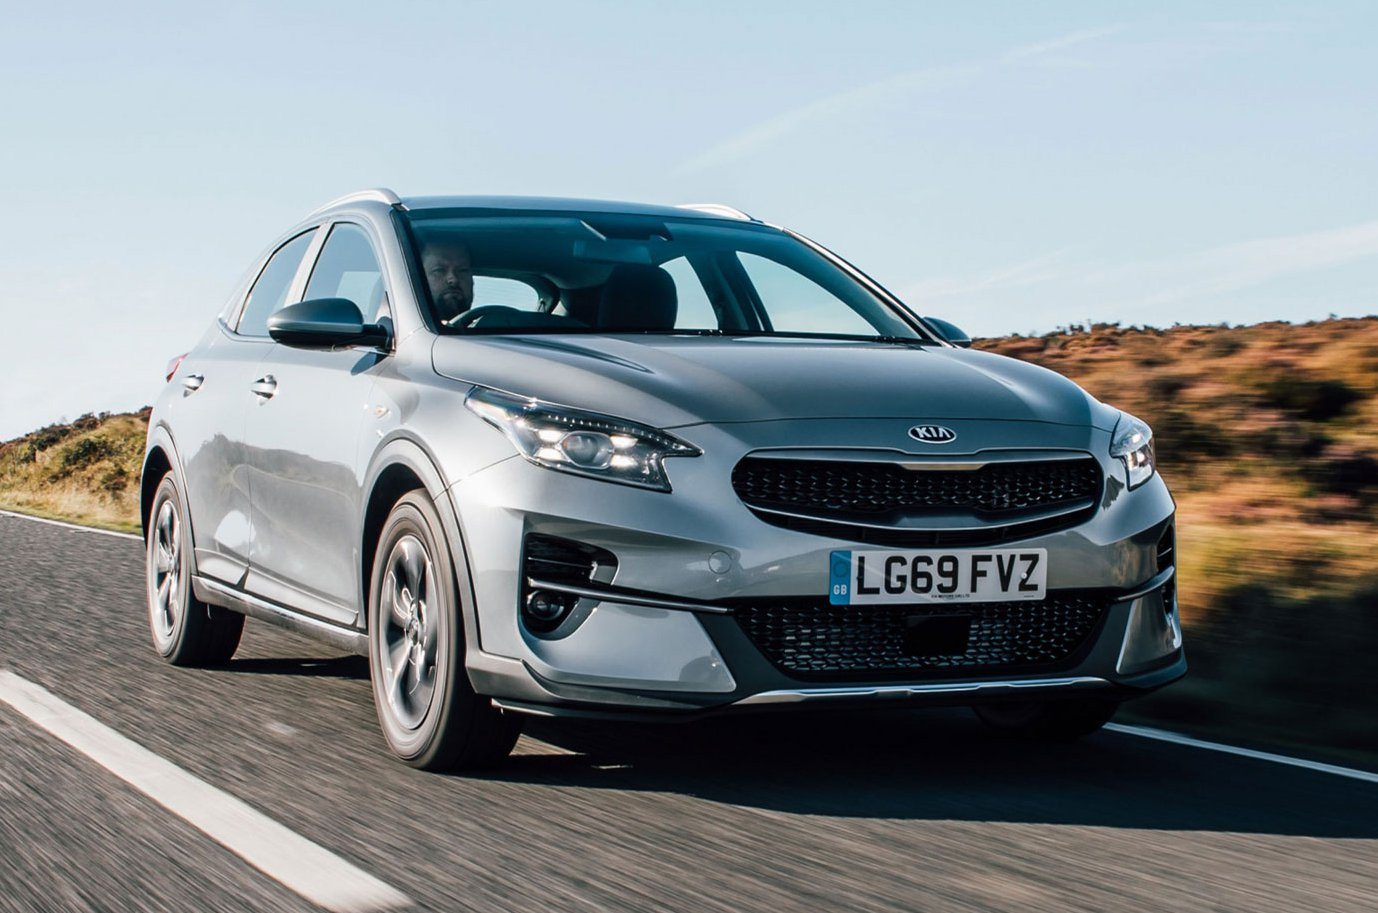 2019 Kia Xceed 1.0 '2' silver front